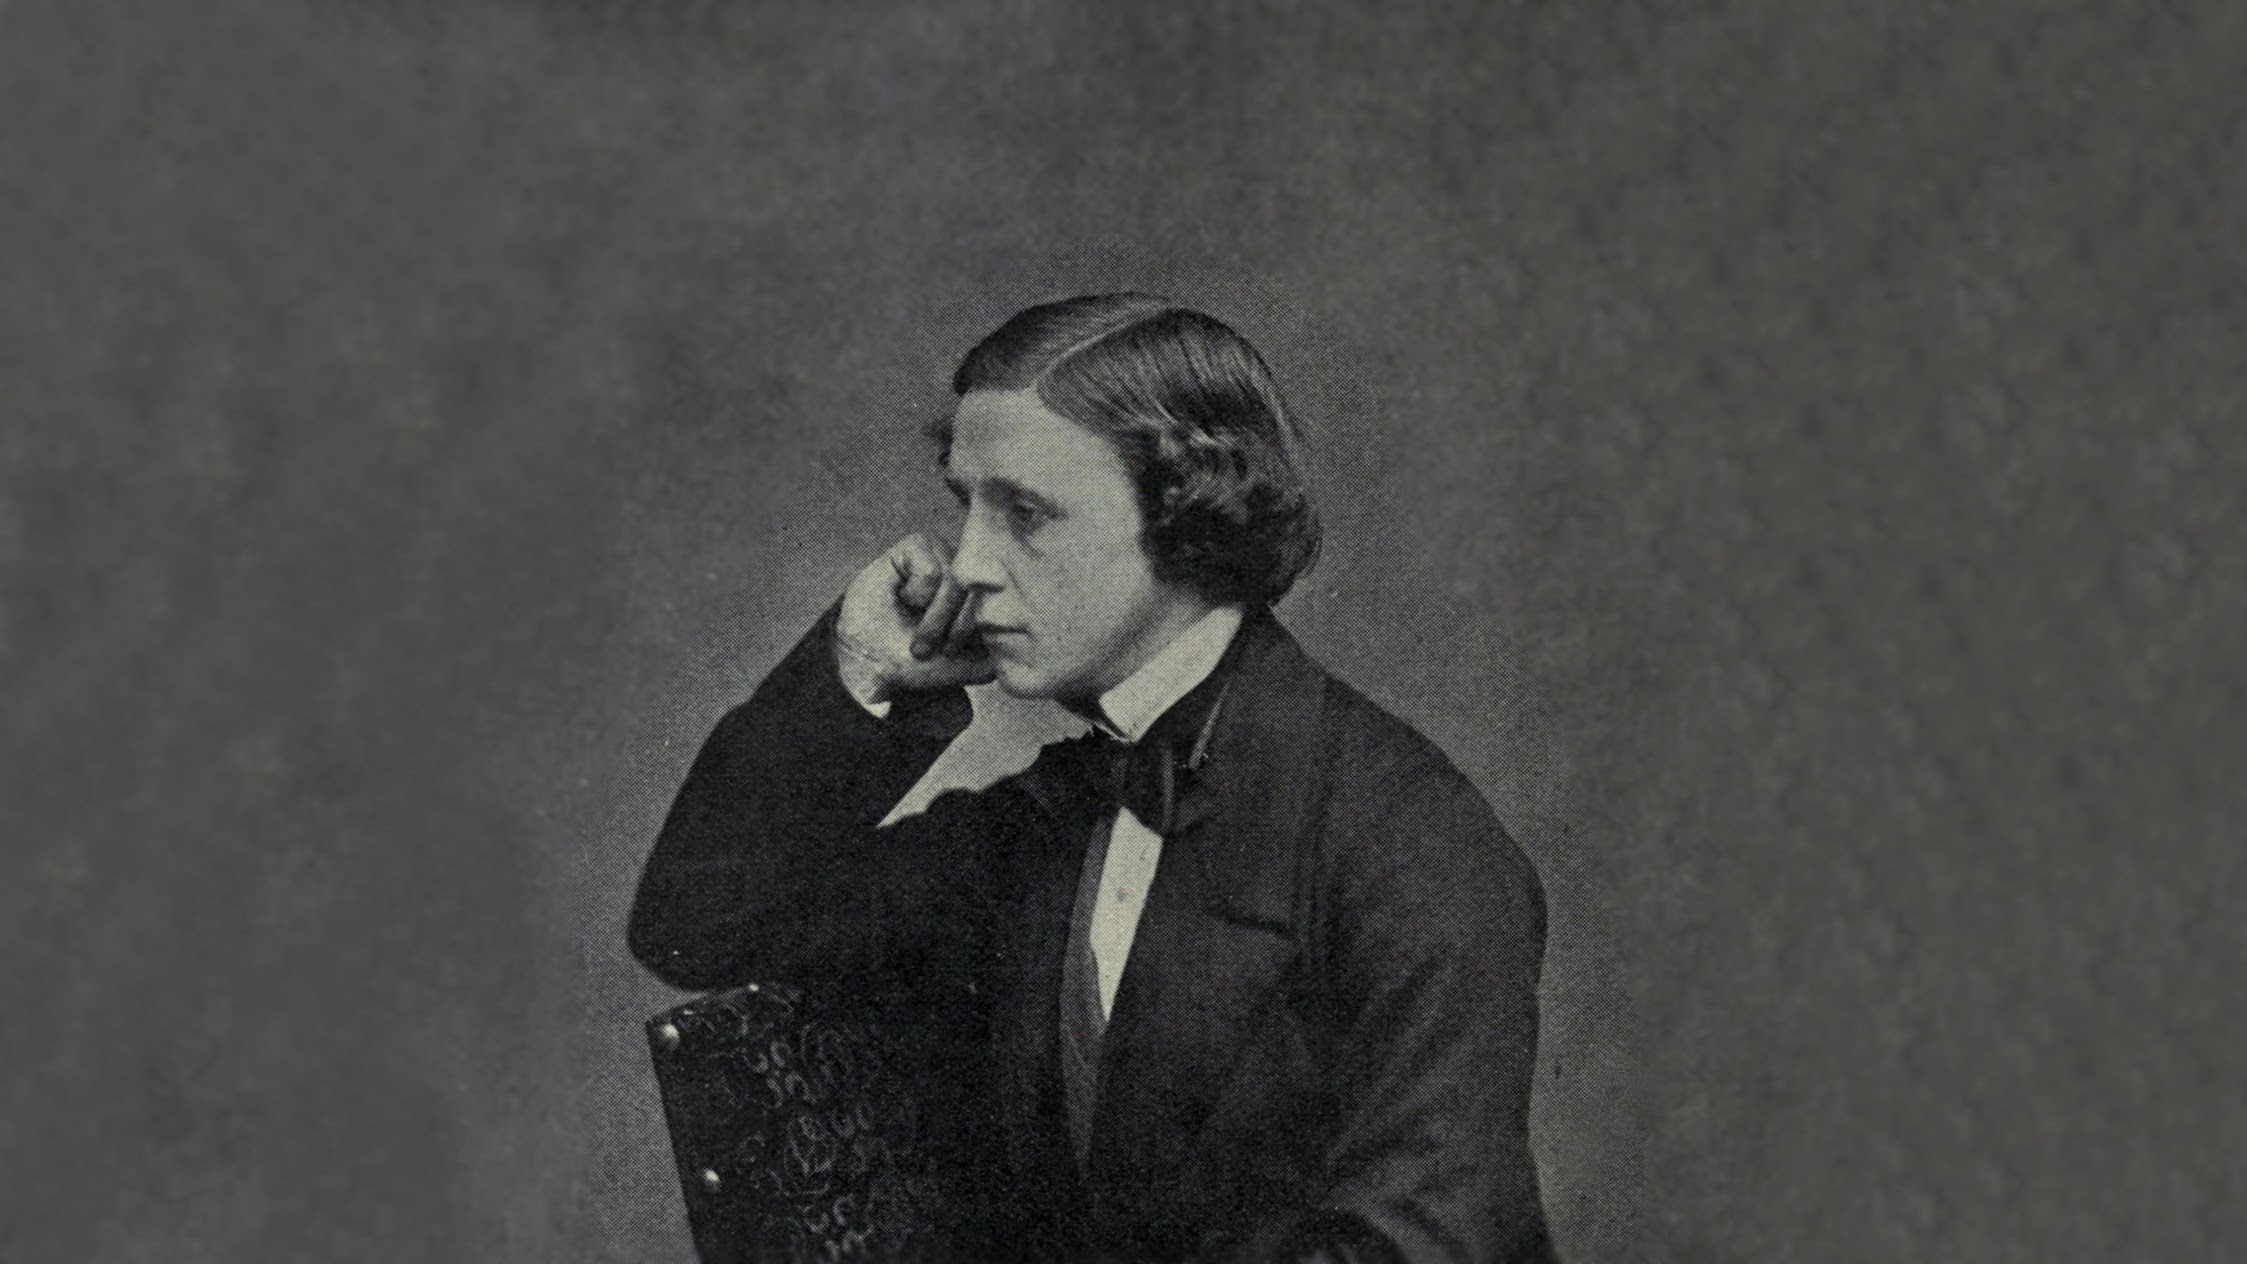 a biography of lewis carroll Lewis carroll: a biography by morton n cohen, 9781447286134, available at book depository with free delivery worldwide.